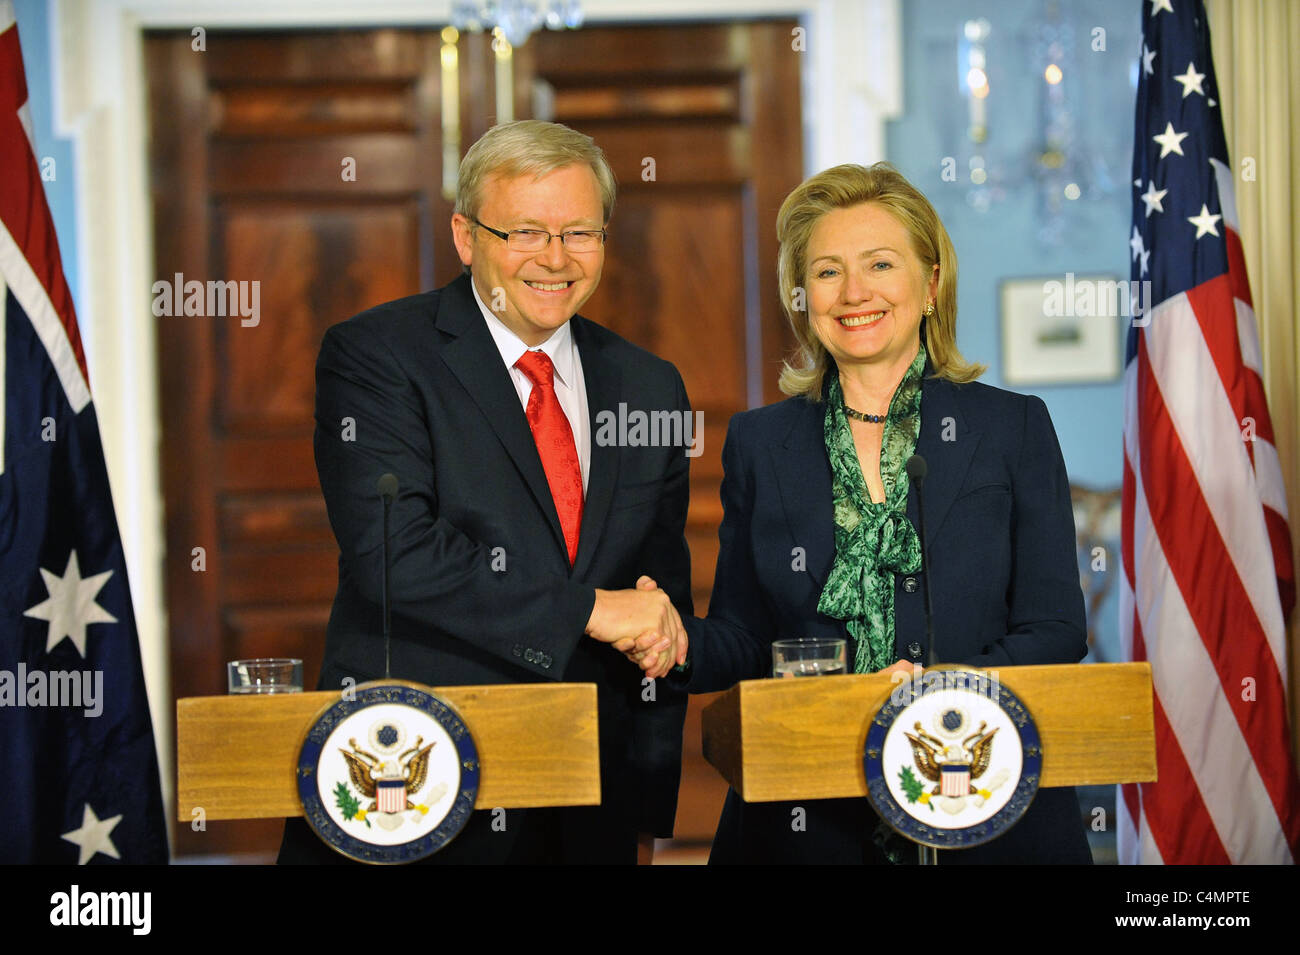 U.S. Secretary of State Clinton shakes hands with Australian Foreign Minister Kevin Rudd after bilateral meeting - Stock Image